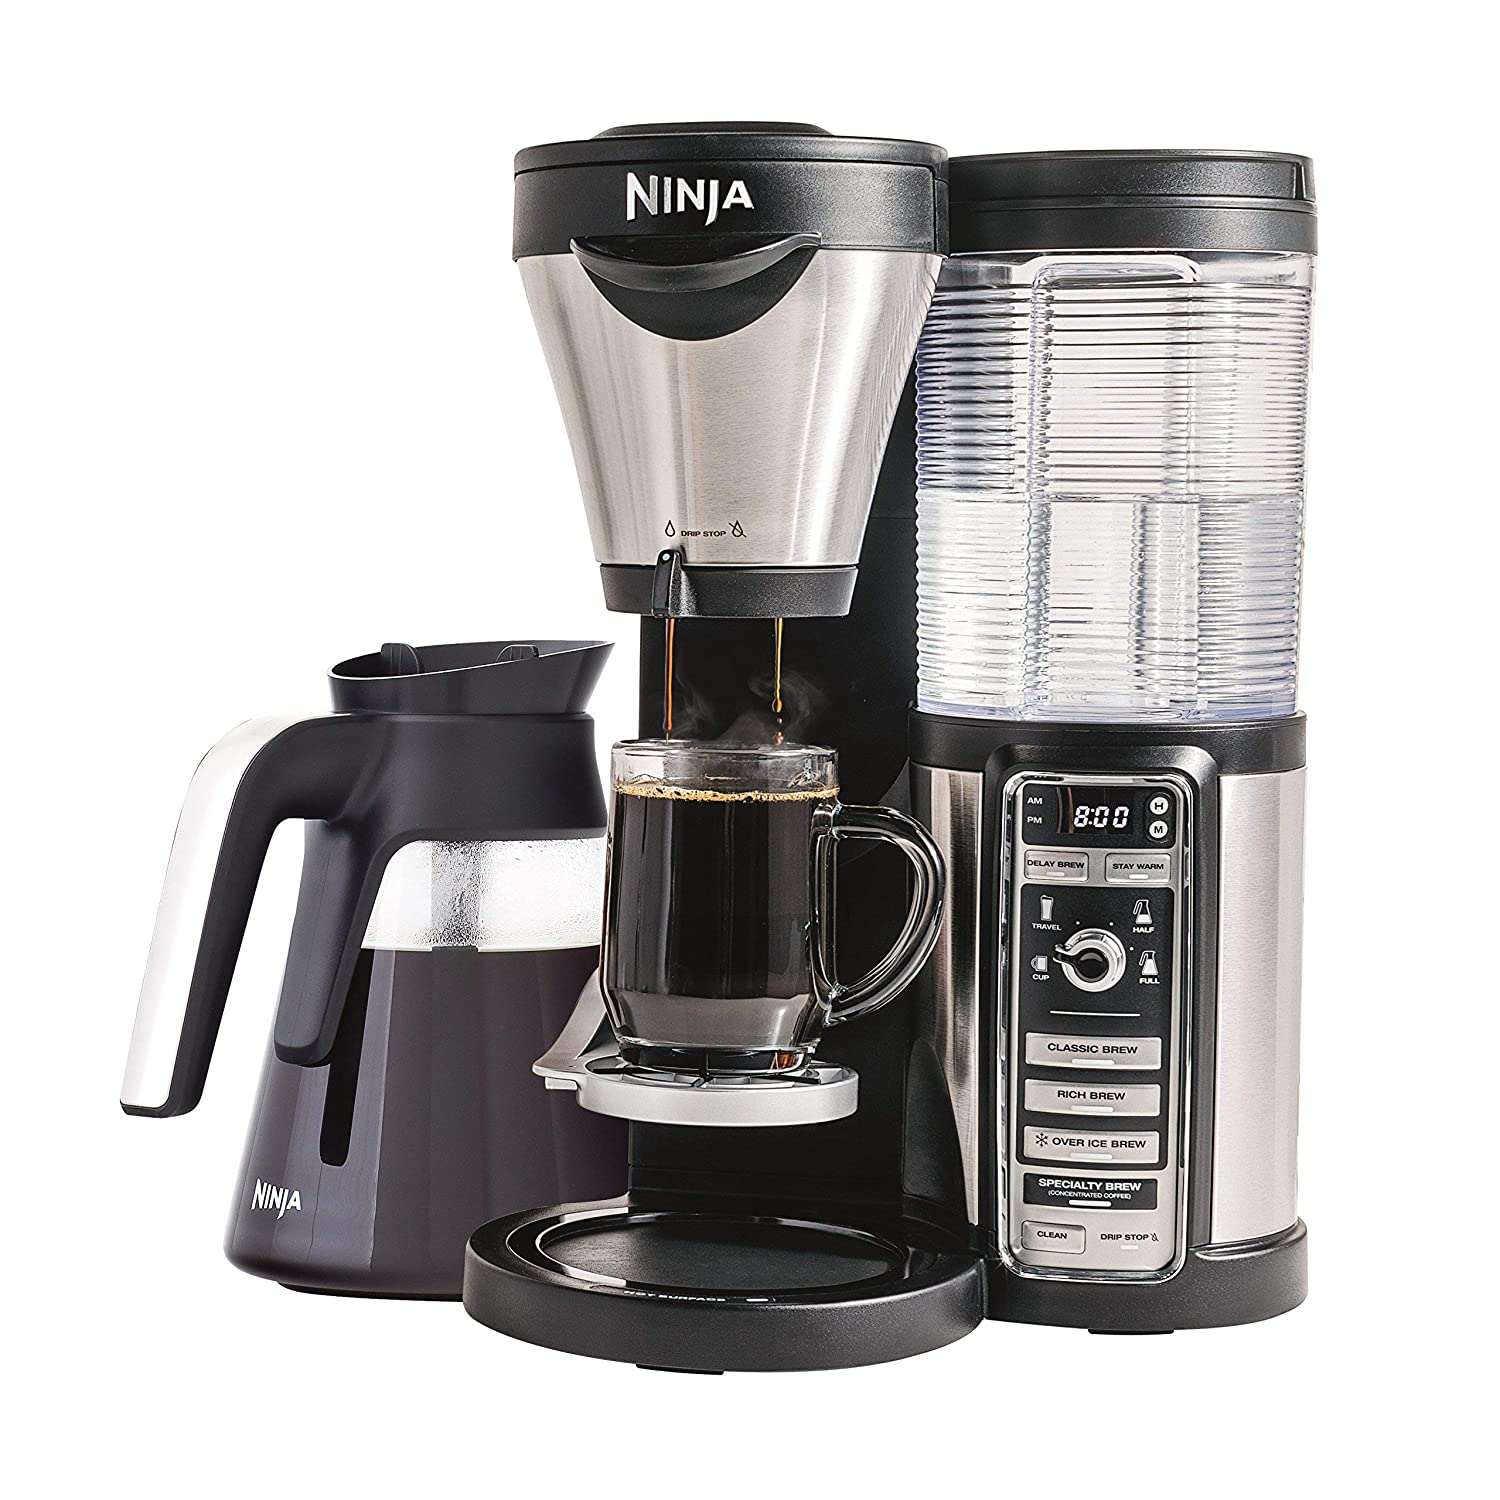 Ninja Coffee Maker for Hot Iced Coffee with 4 Brew Sizes, Programmable Auto-iQ, Milk Frother, 43oz Glass Carafe, Tumbler and 100 Recipes CF082 Renewed